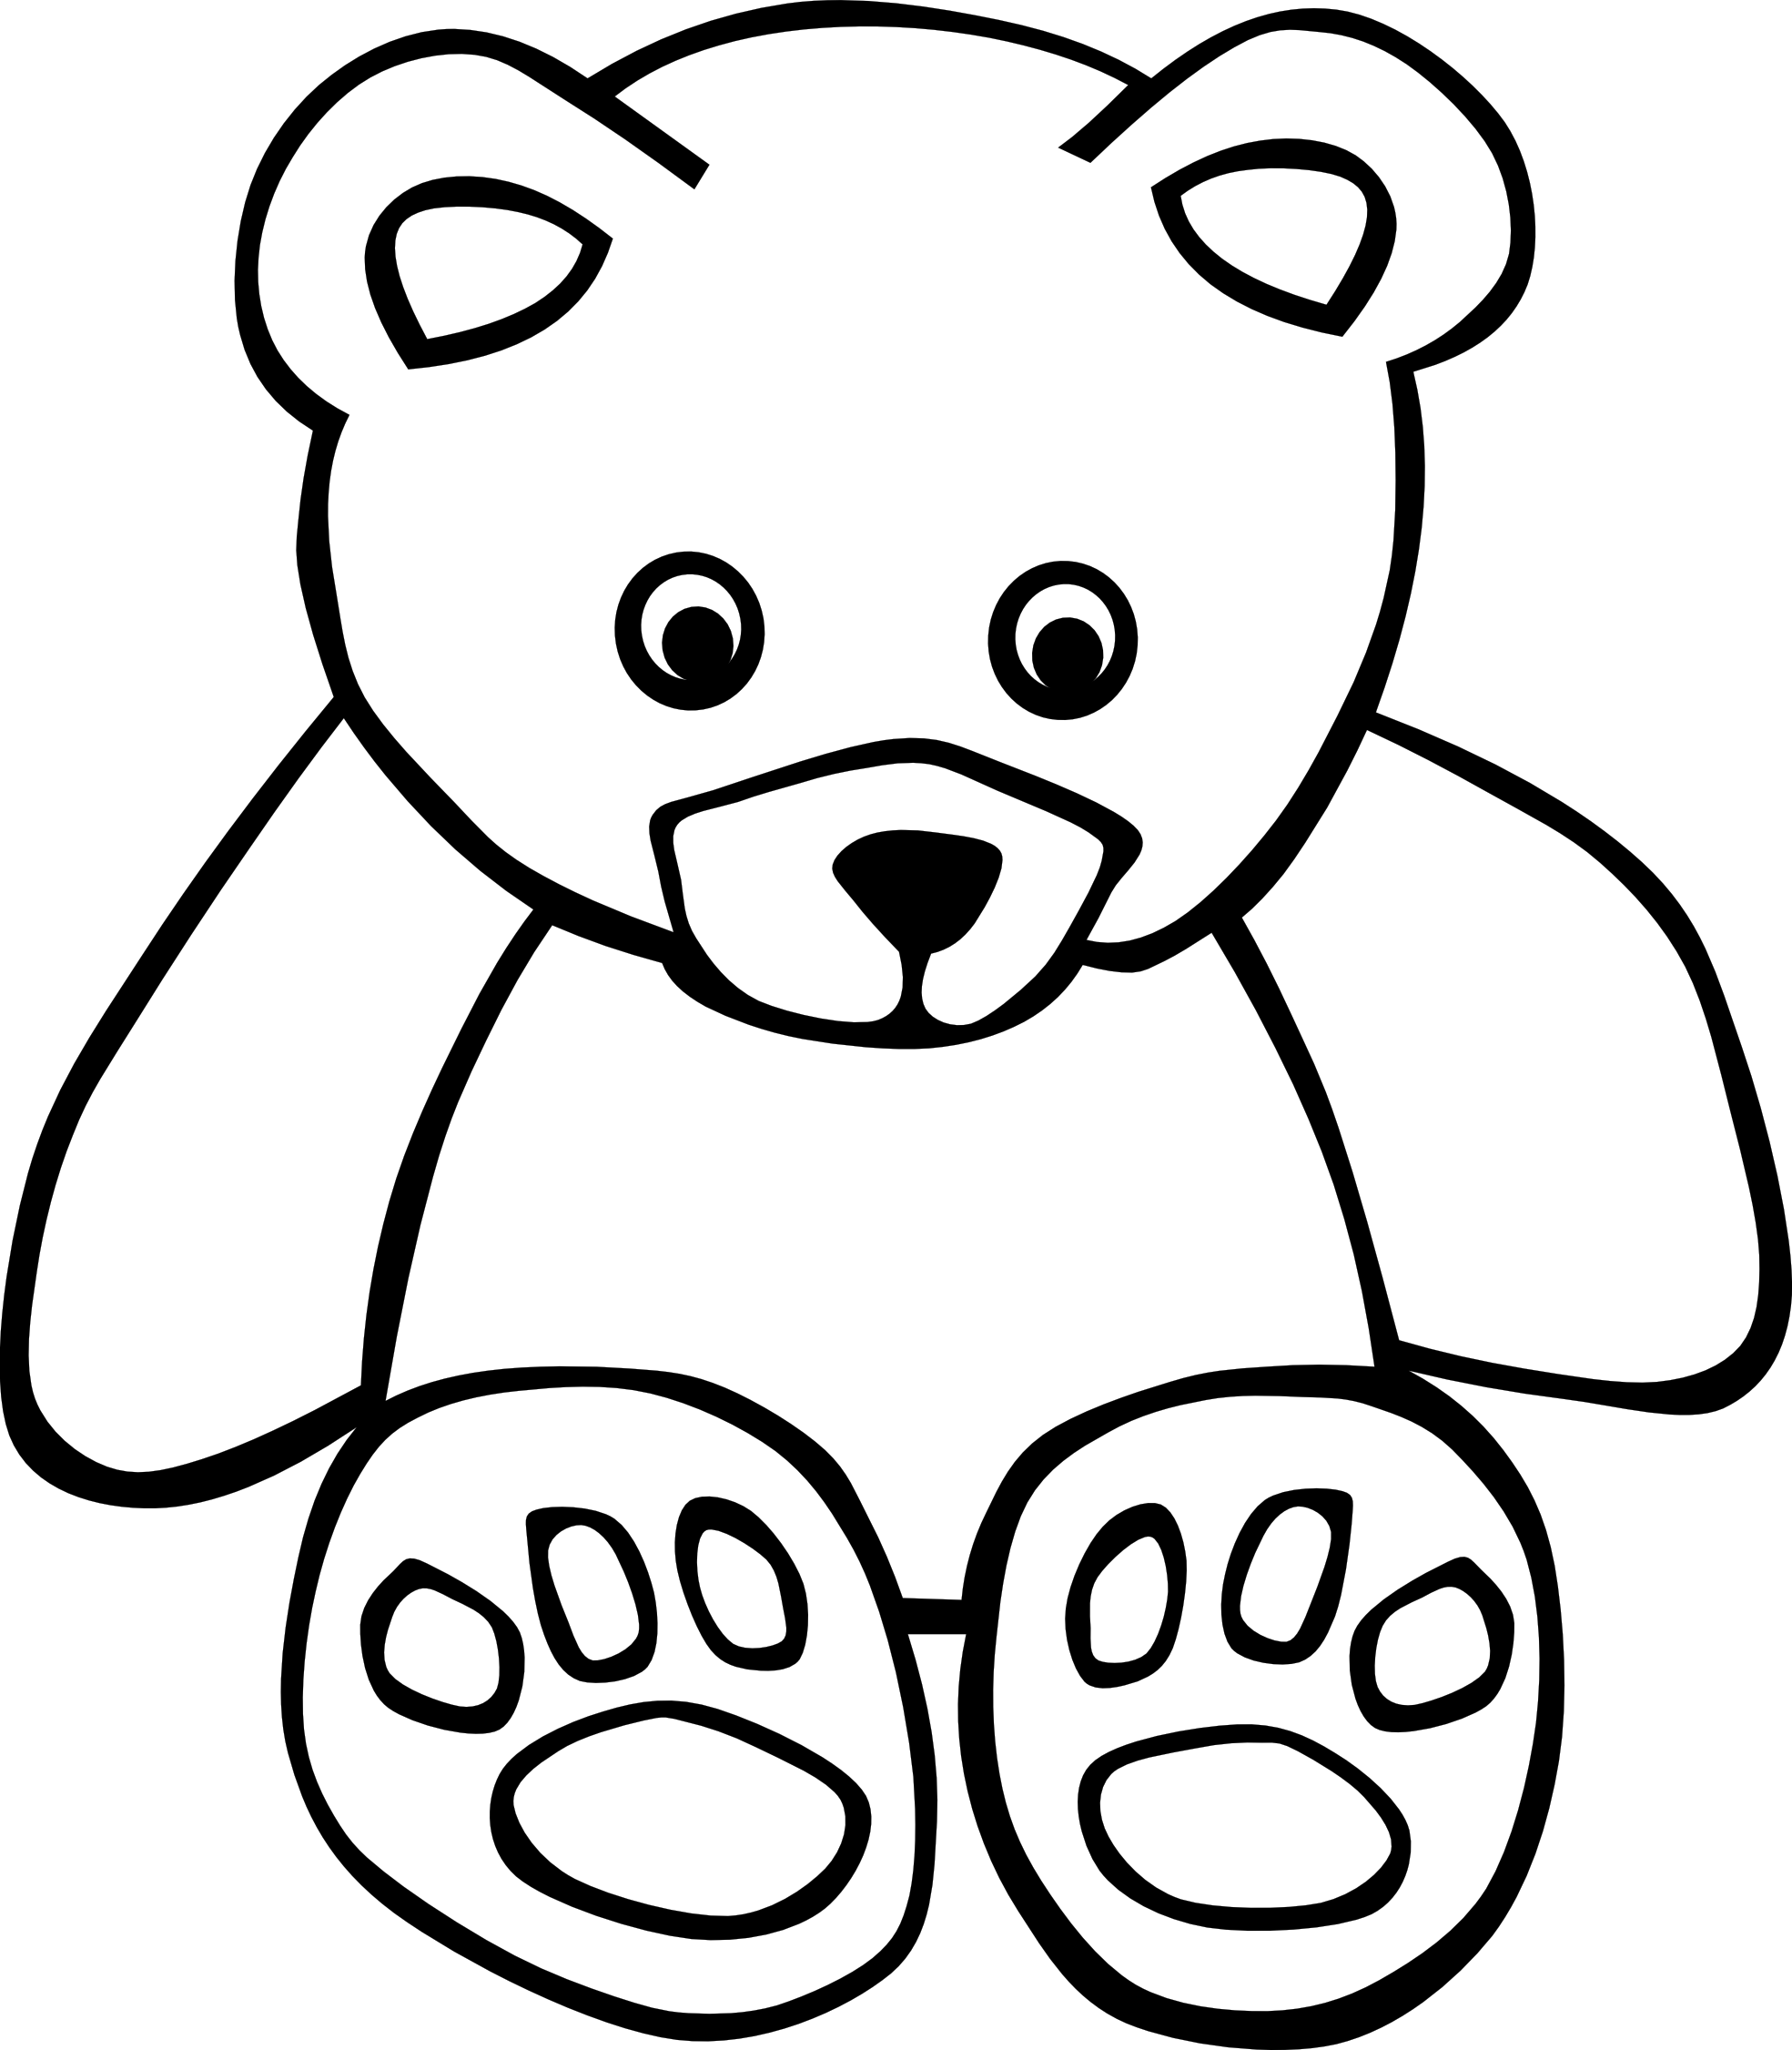 Clip Art Teddy Bear & Clip Art Teddy Bear Clip Art Images.